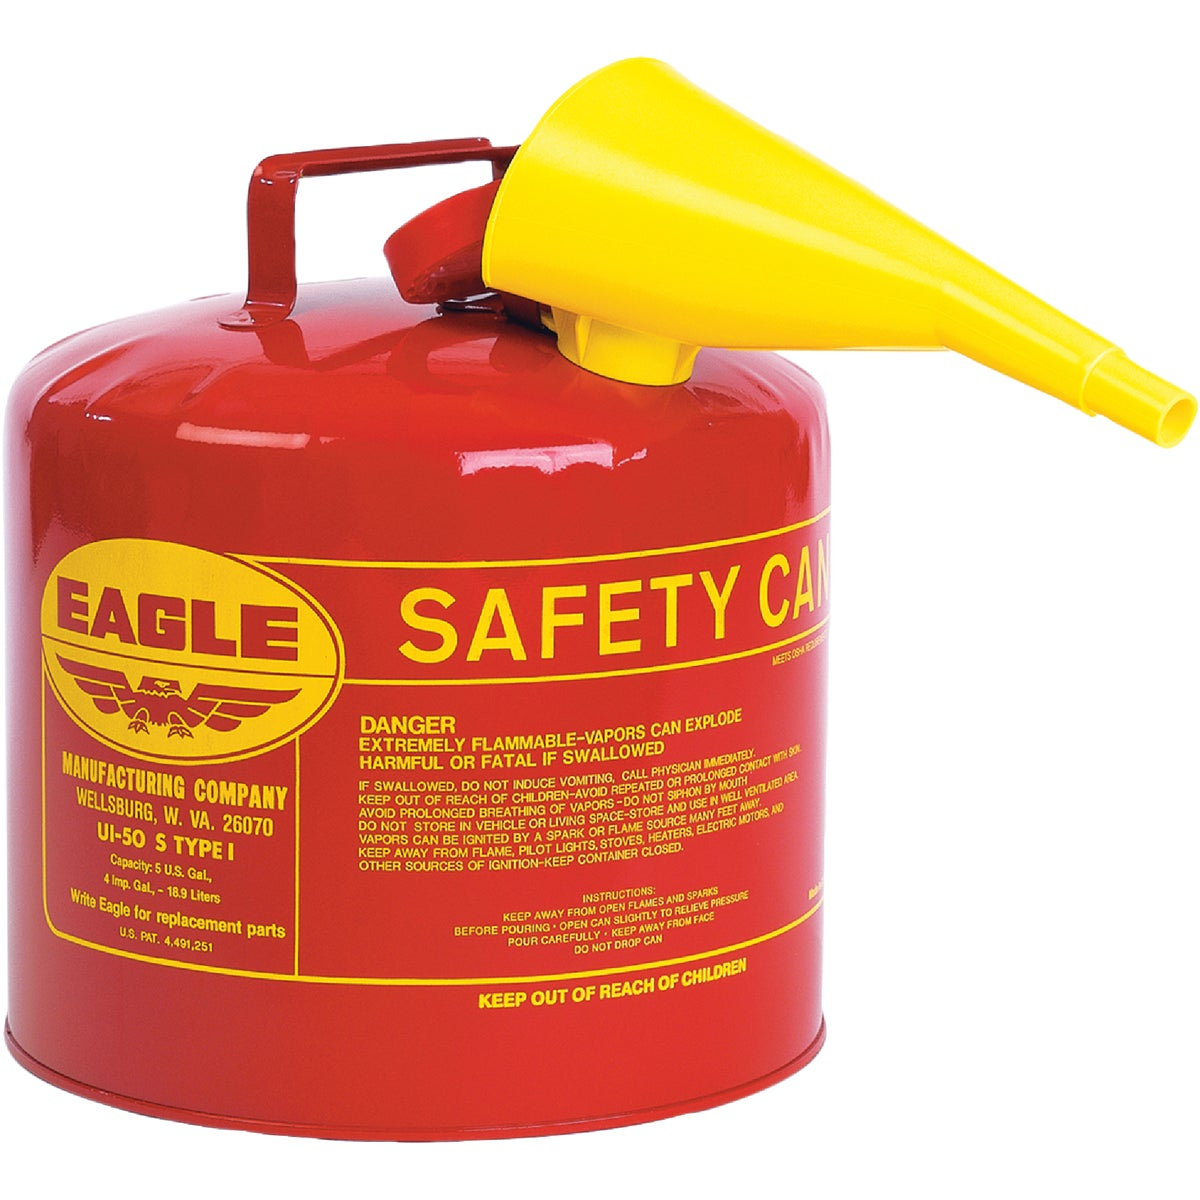 RED 5GAL GAS SAFETY CAN - UI-50-FS by Eagle Mfg Co